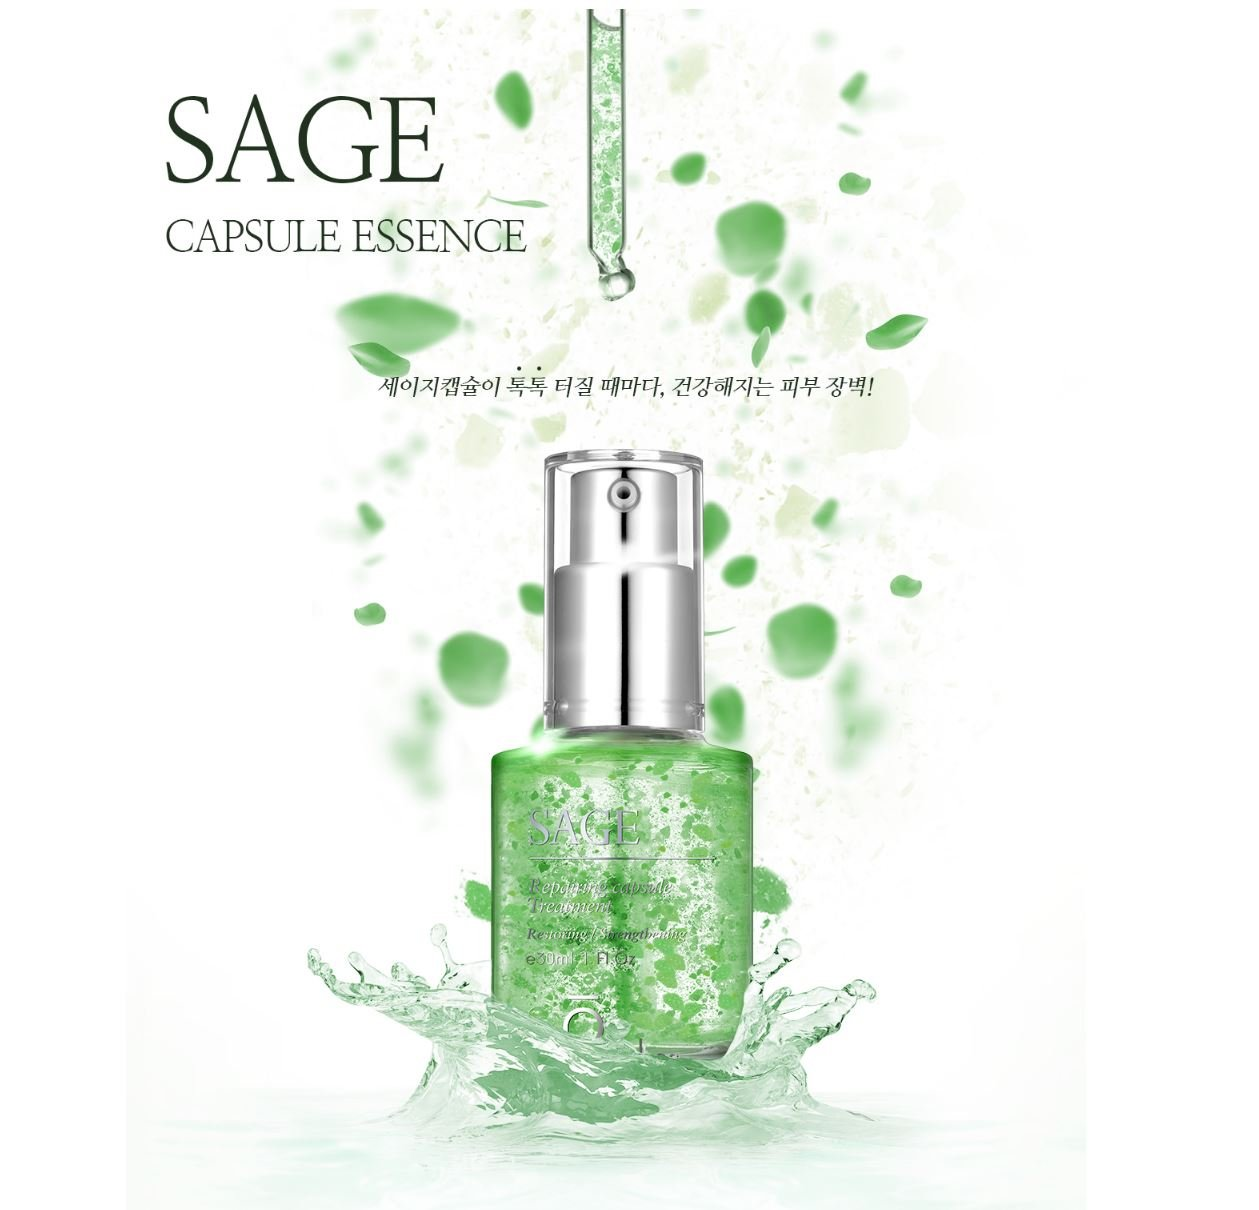 9wishes sage capsule essence cosme hut australia